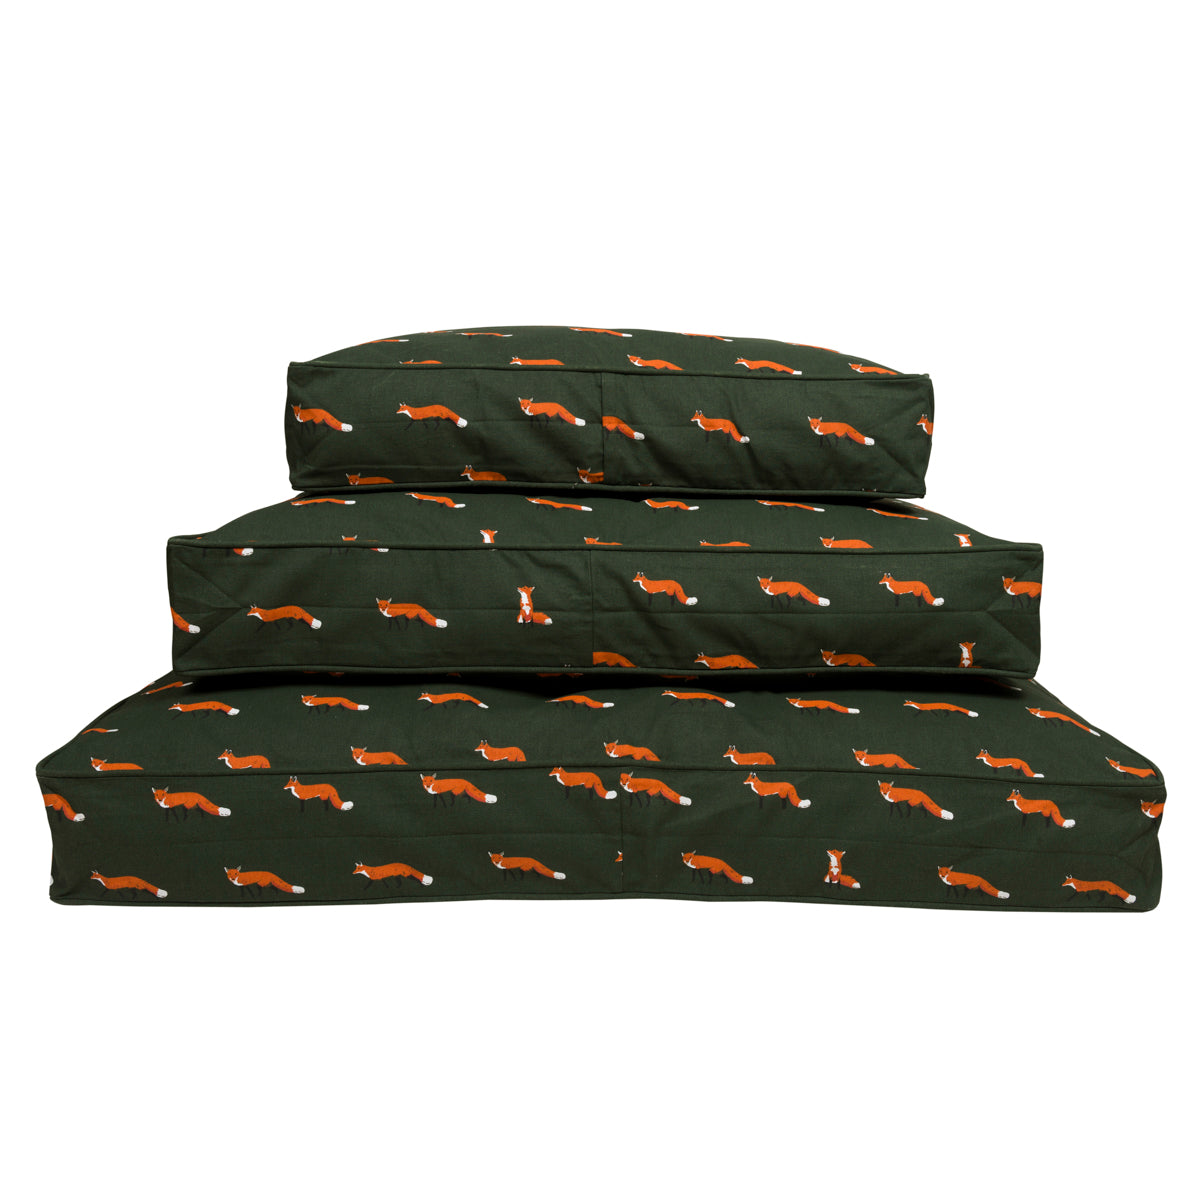 Foxes Pet Bed Mattress